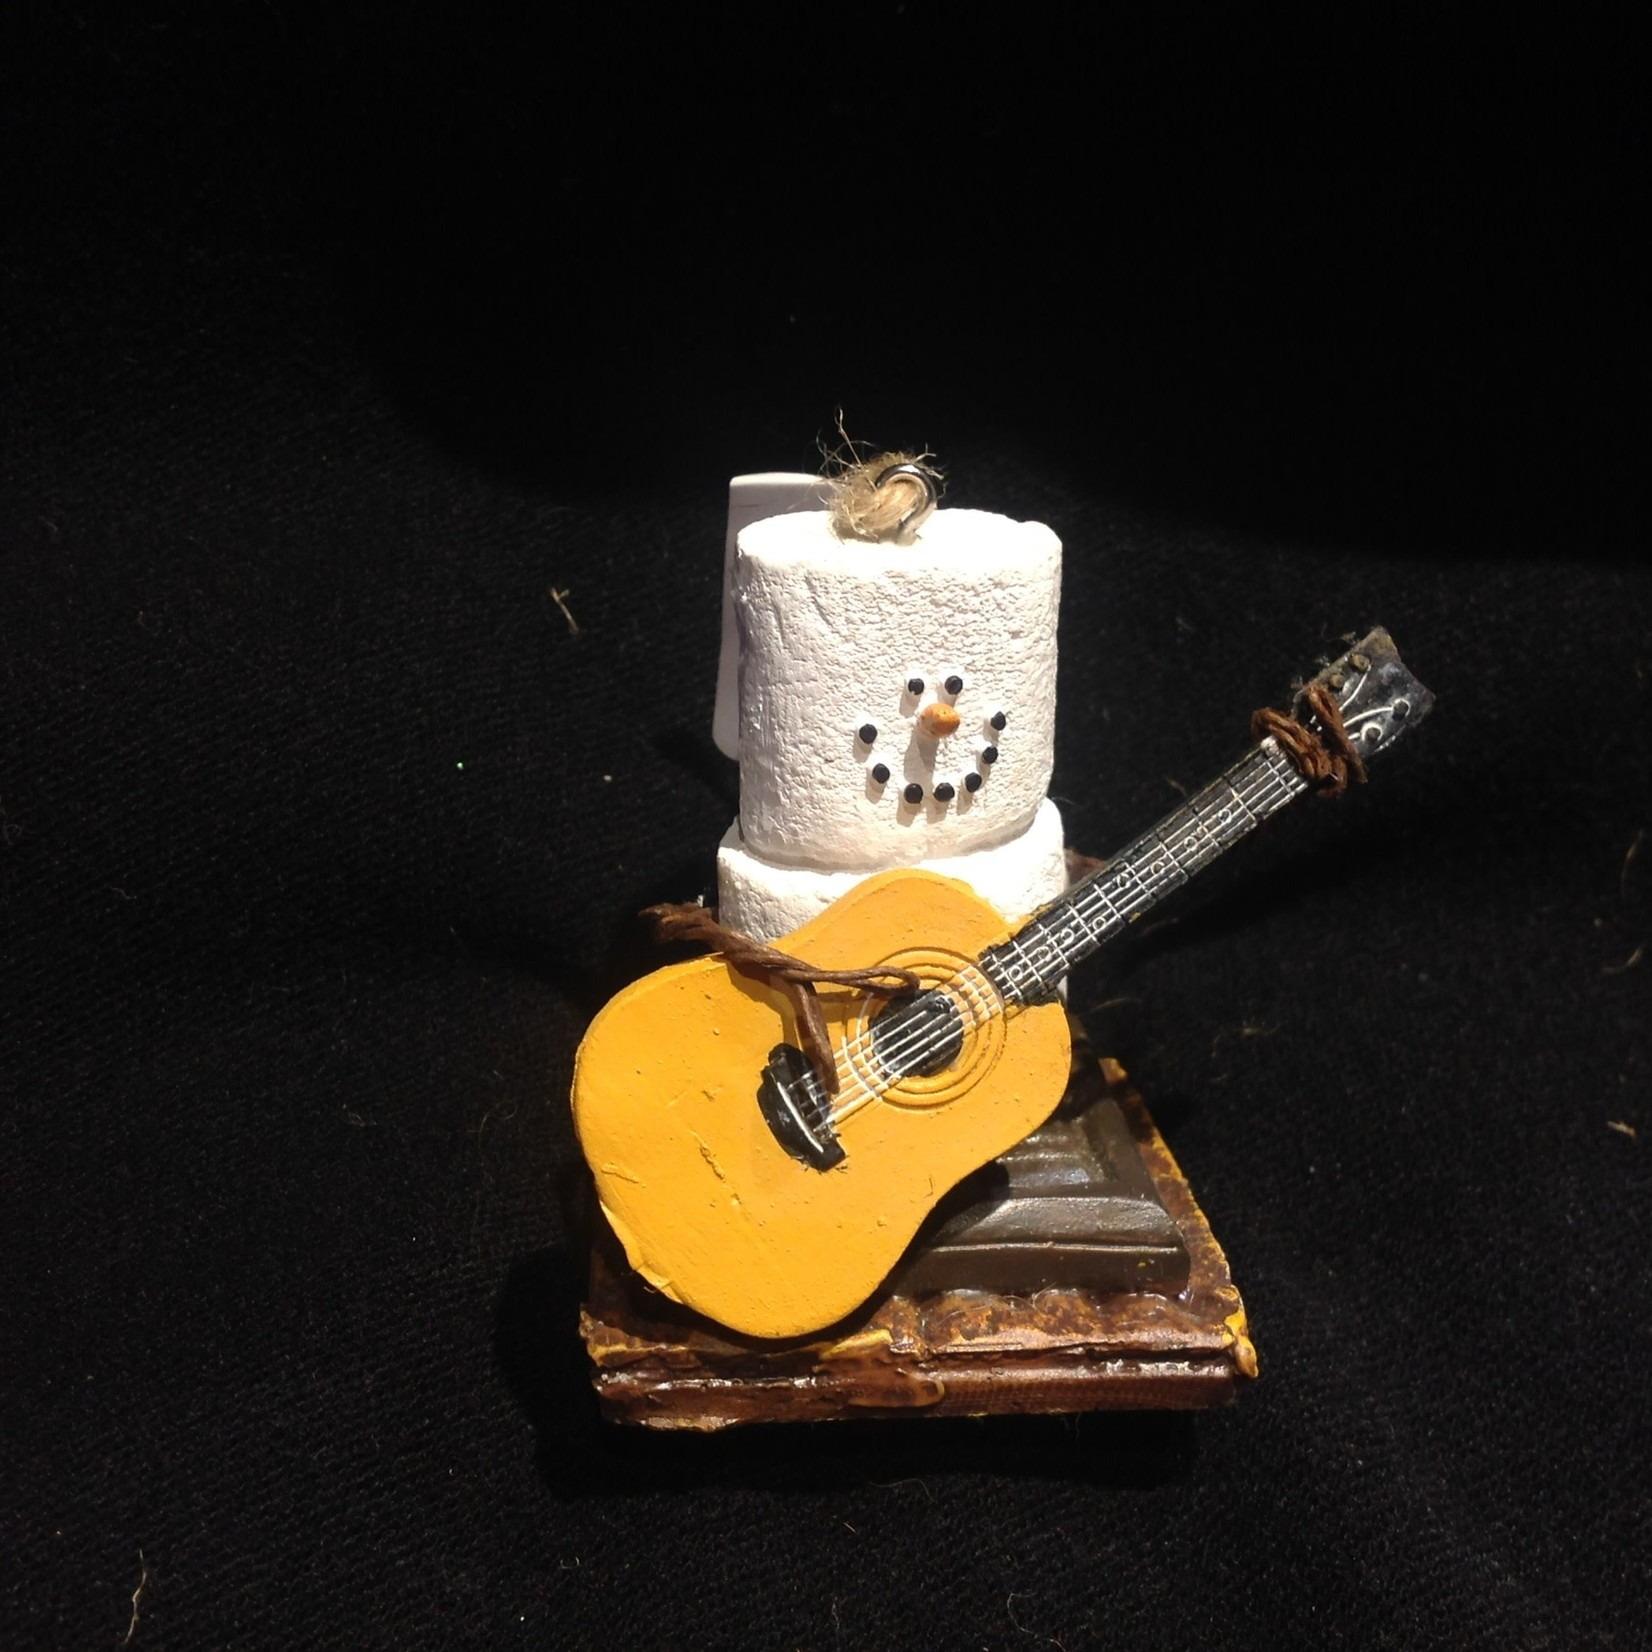 S'More with Guitar